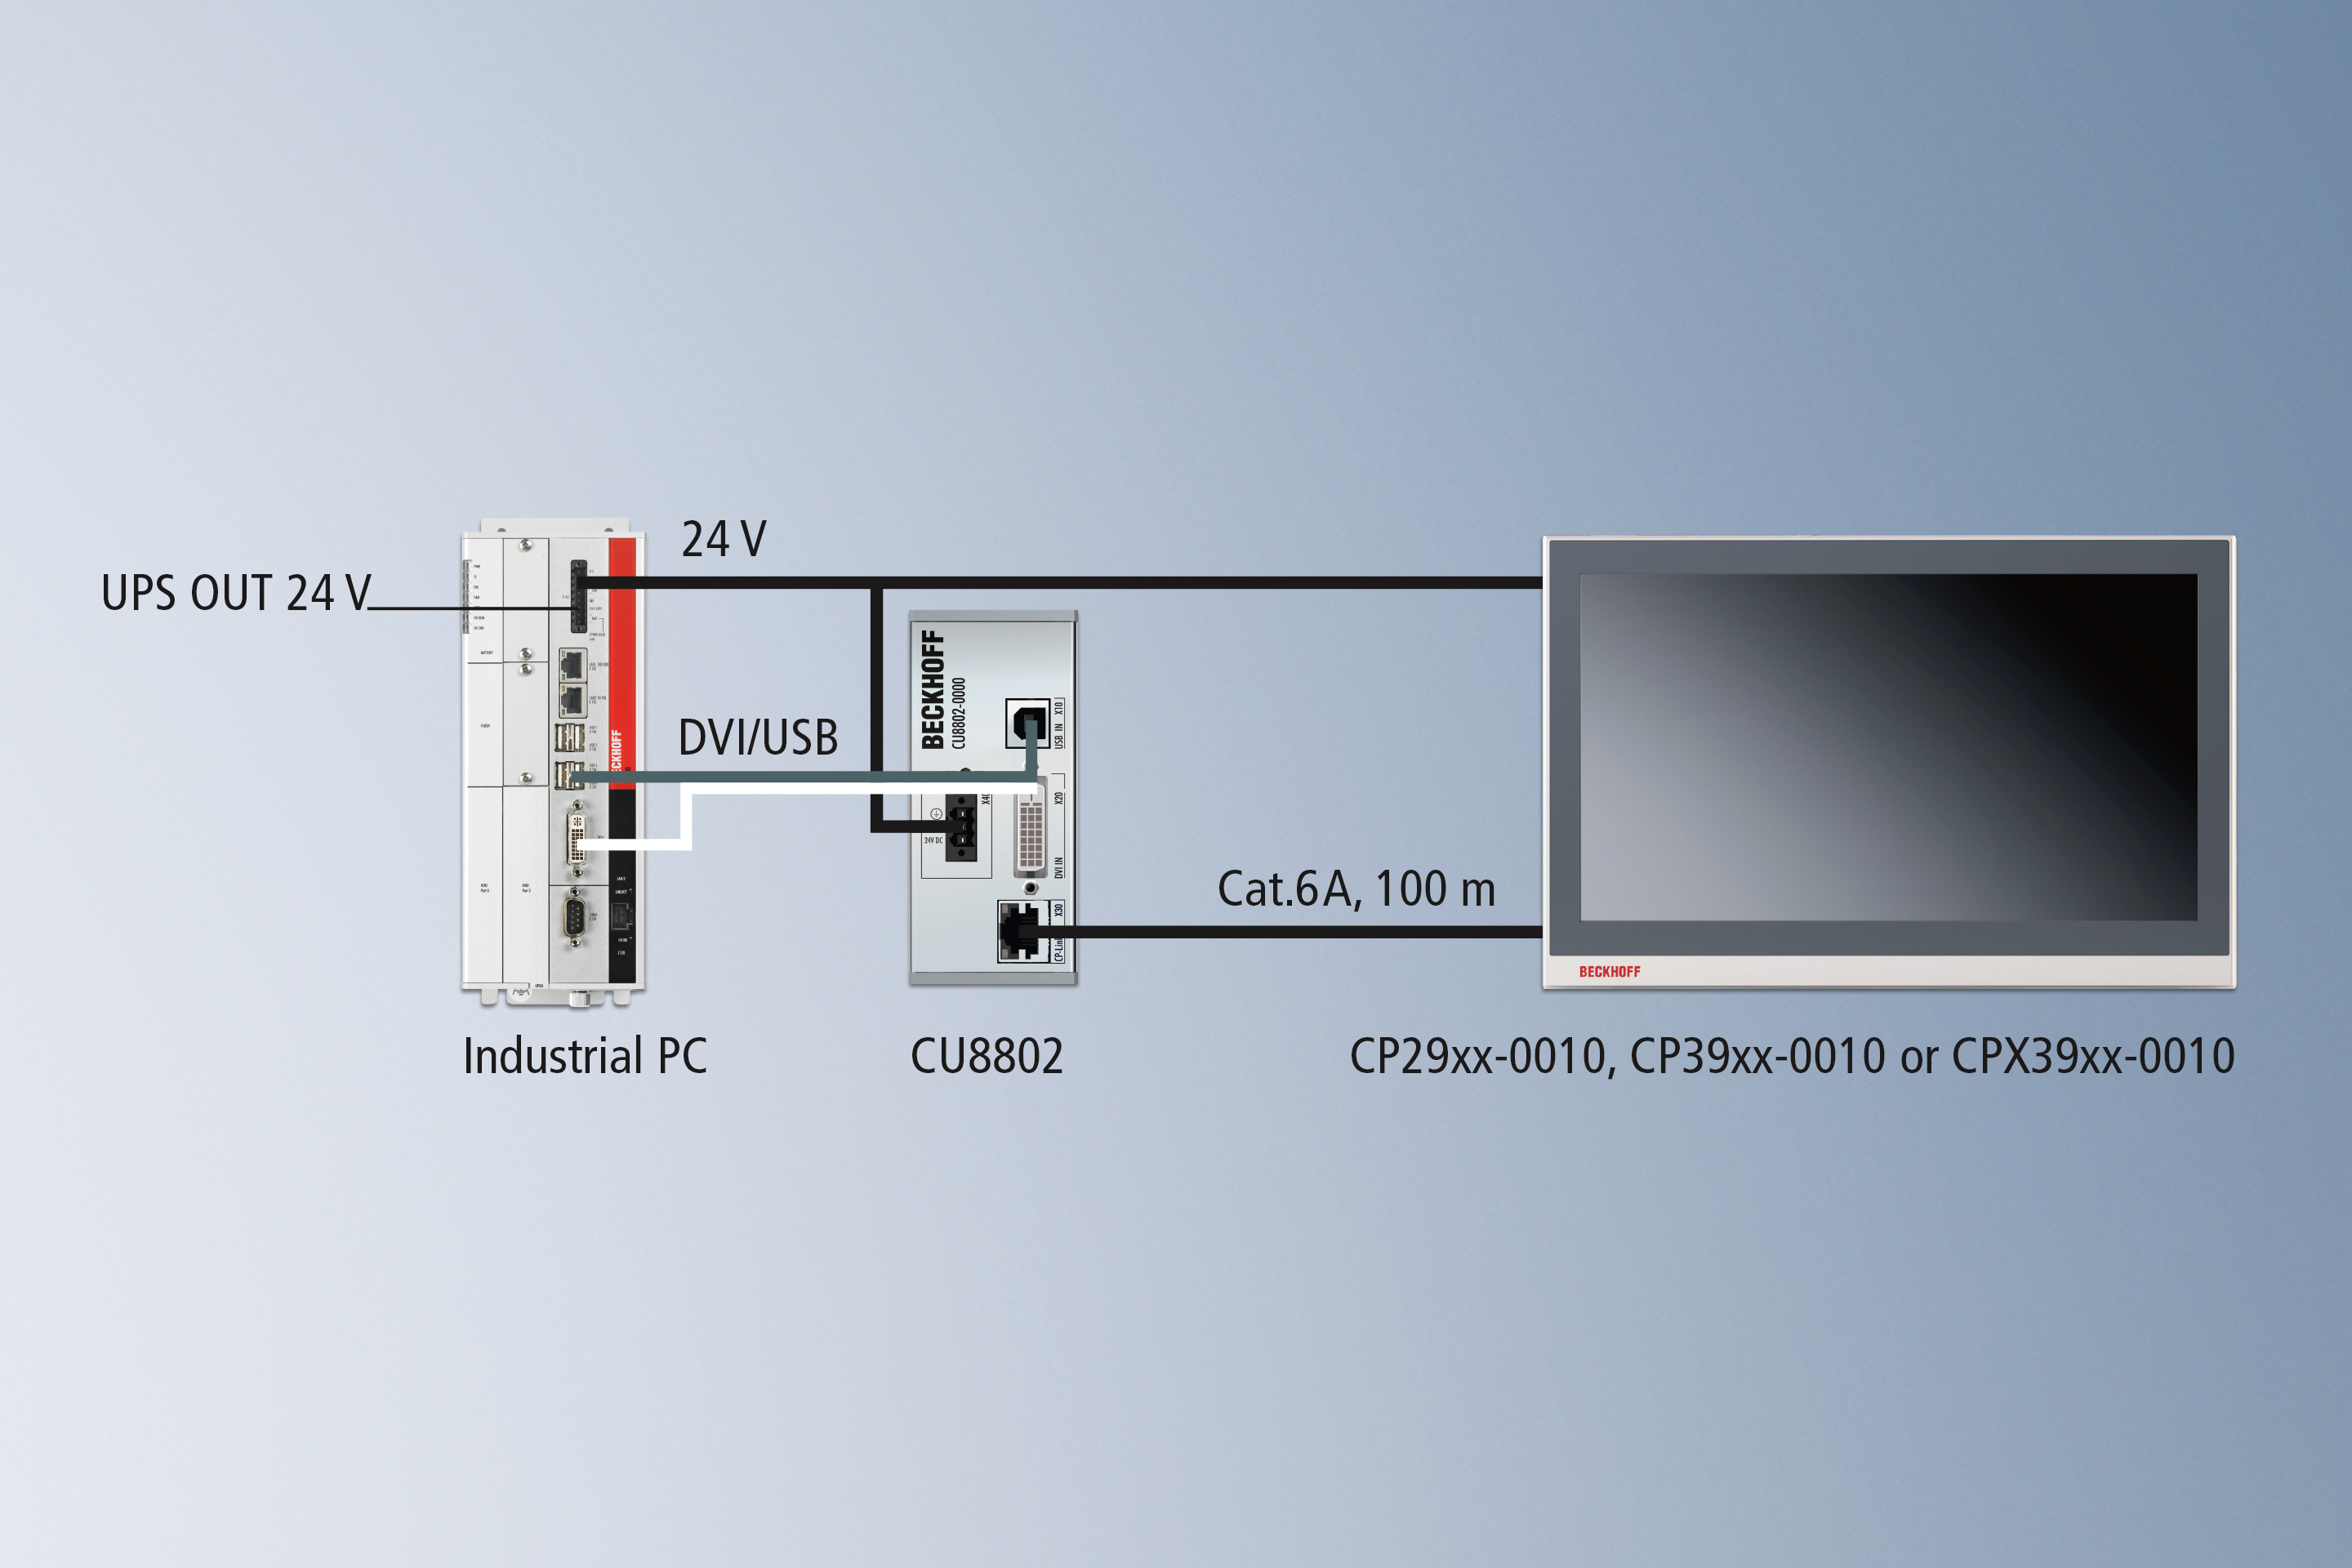 CP-Link 4 – The Two Cable Display Link: via CU8802 transmitter box